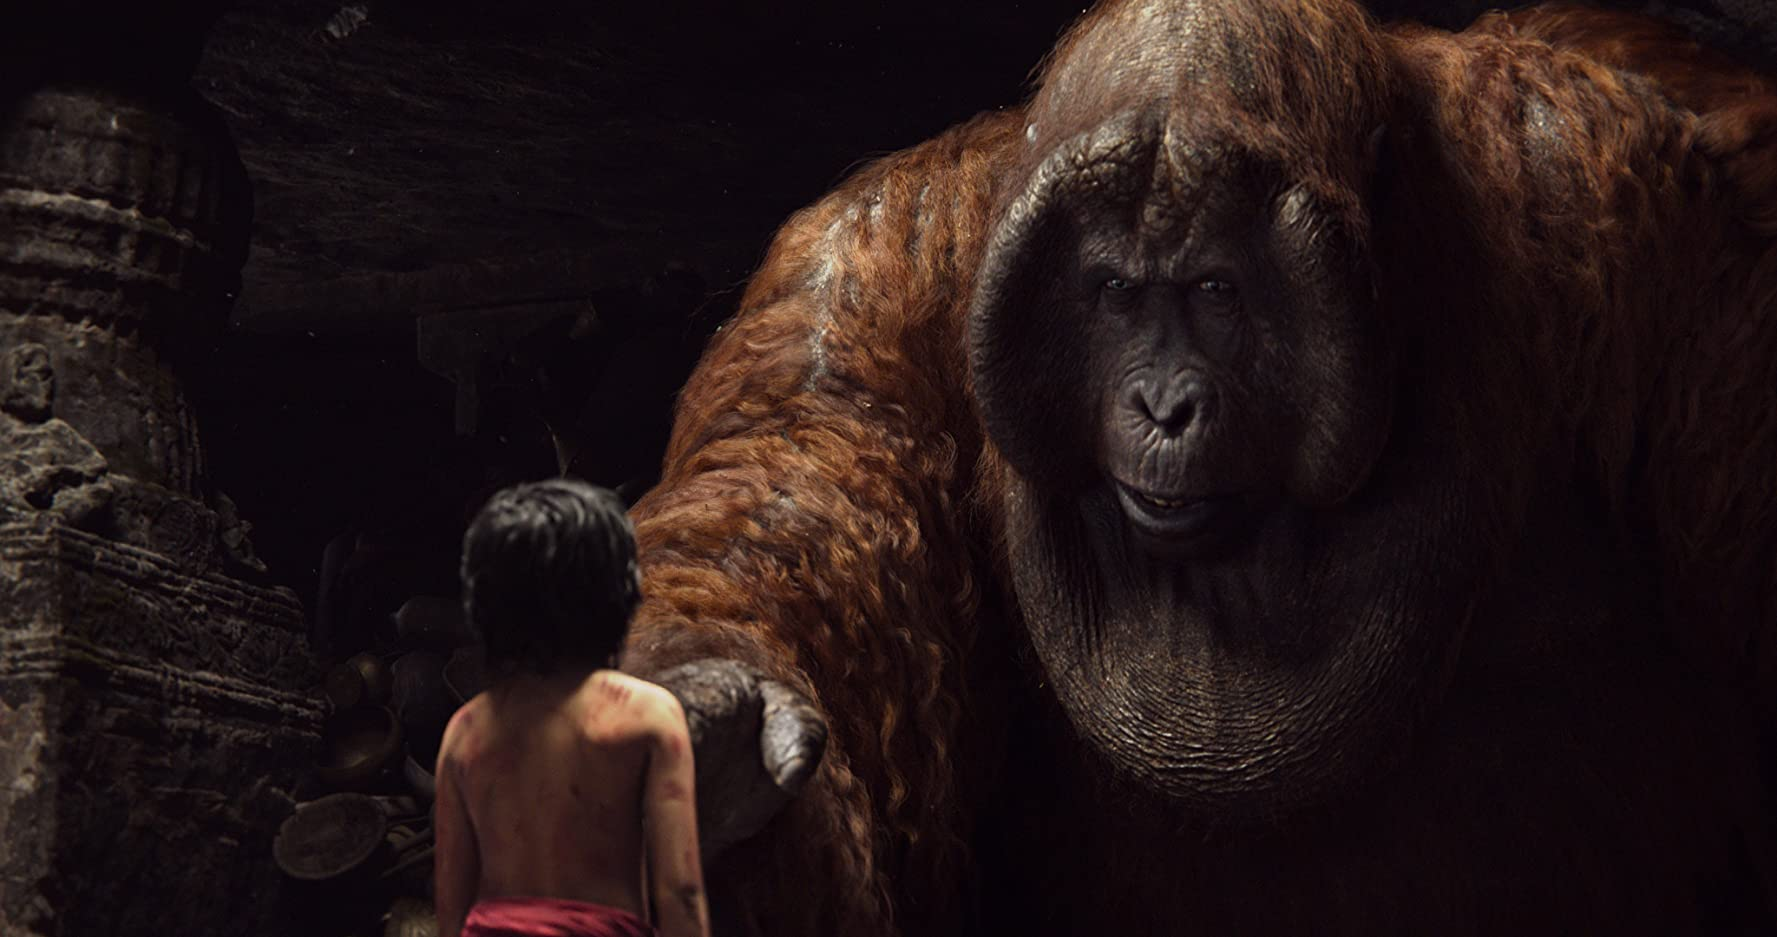 Christopher Walken and Neel Sethi in The Jungle Book (2016)